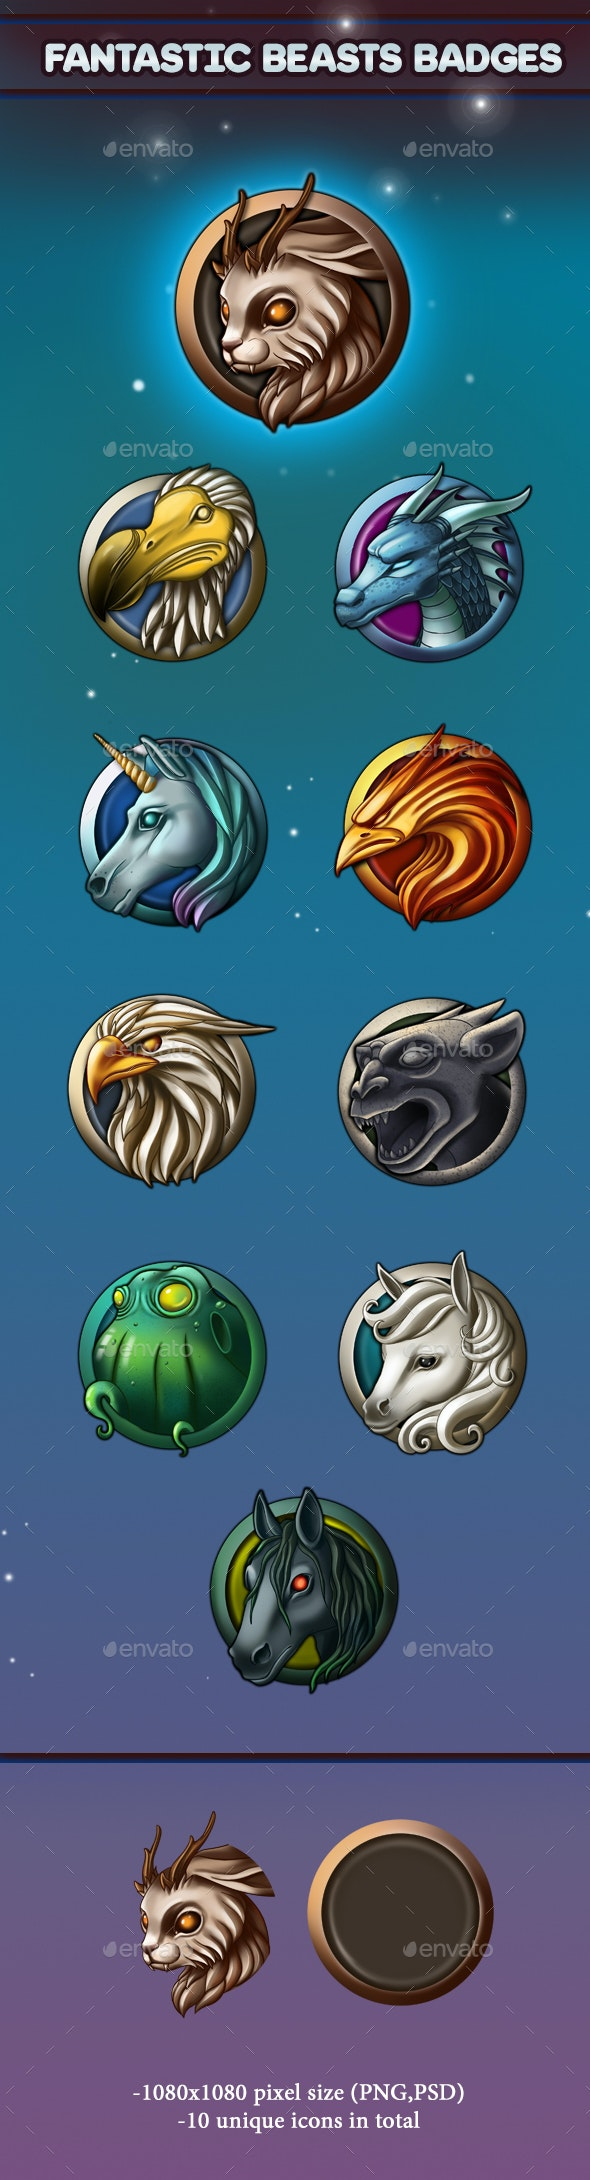 Fantastic Beasts Badges - Miscellaneous Game Assets